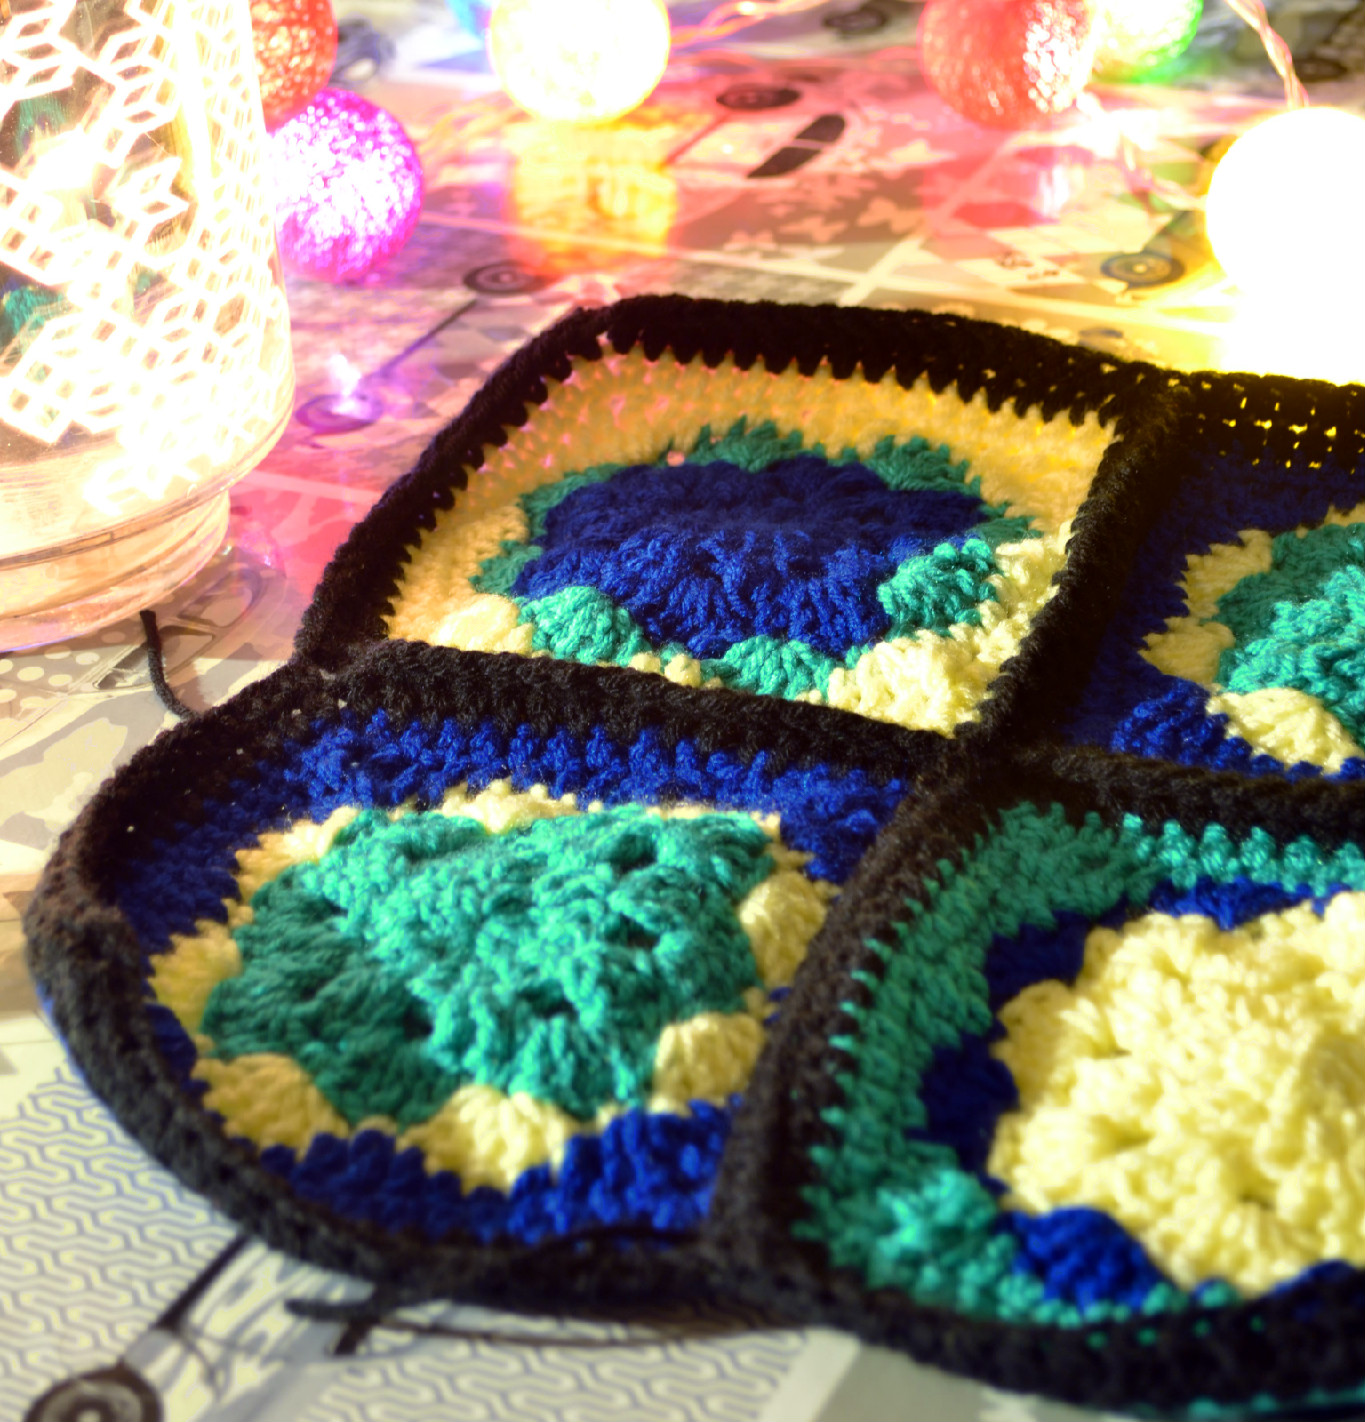 granny squares on table with lights